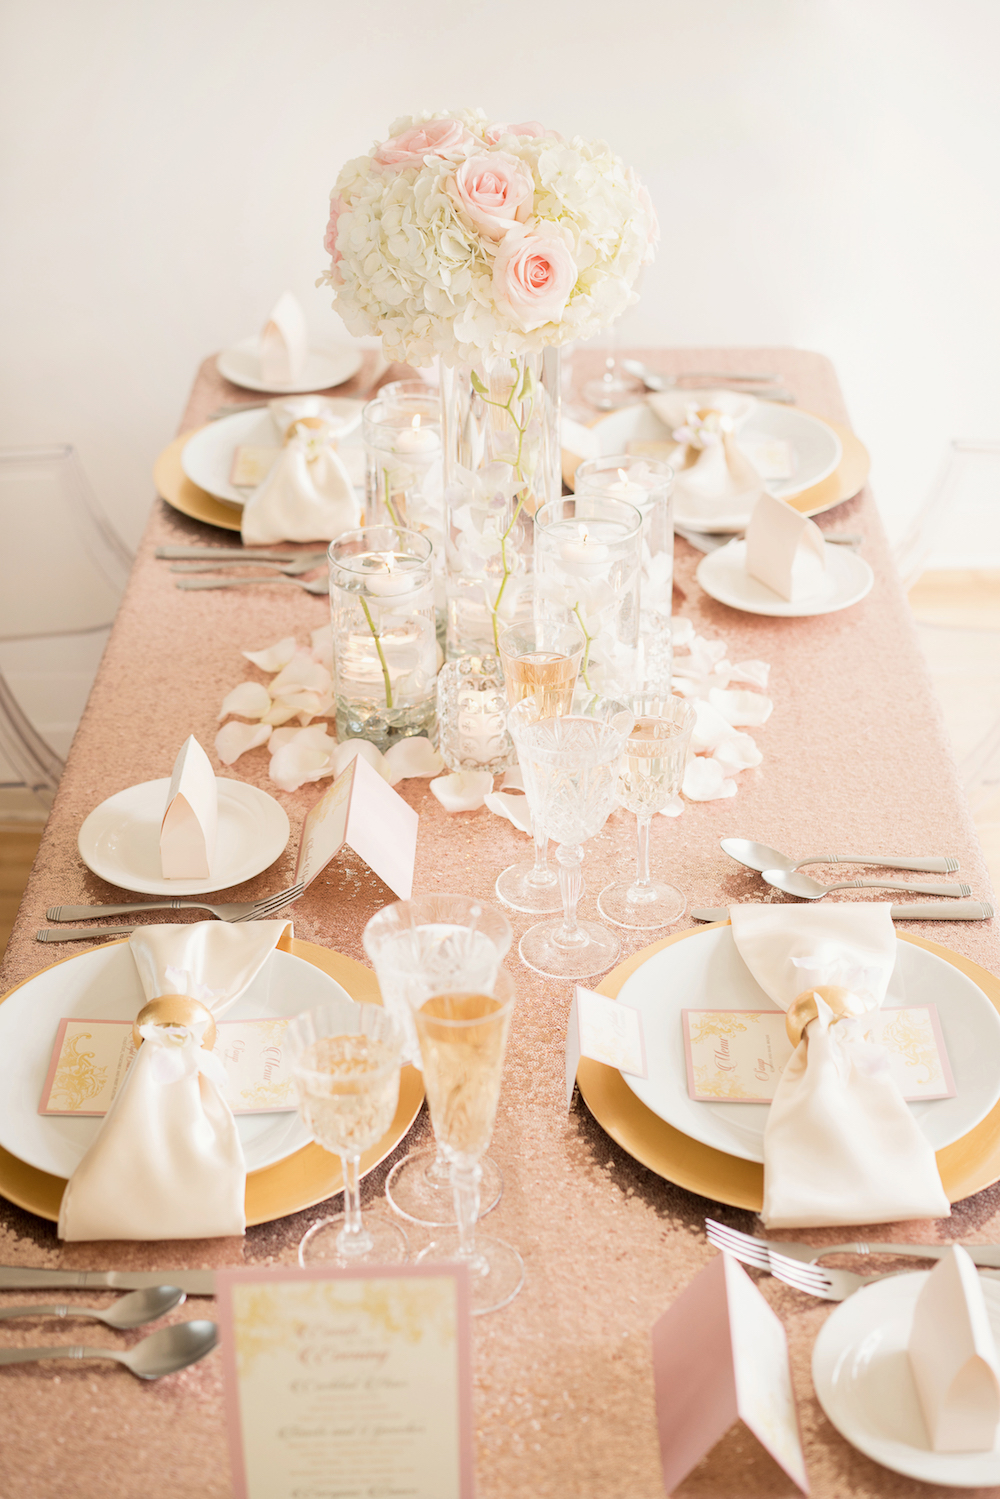 Gorgeous Sparkly Table Setting from a Romantic Wedding Inspired Styled Shoot